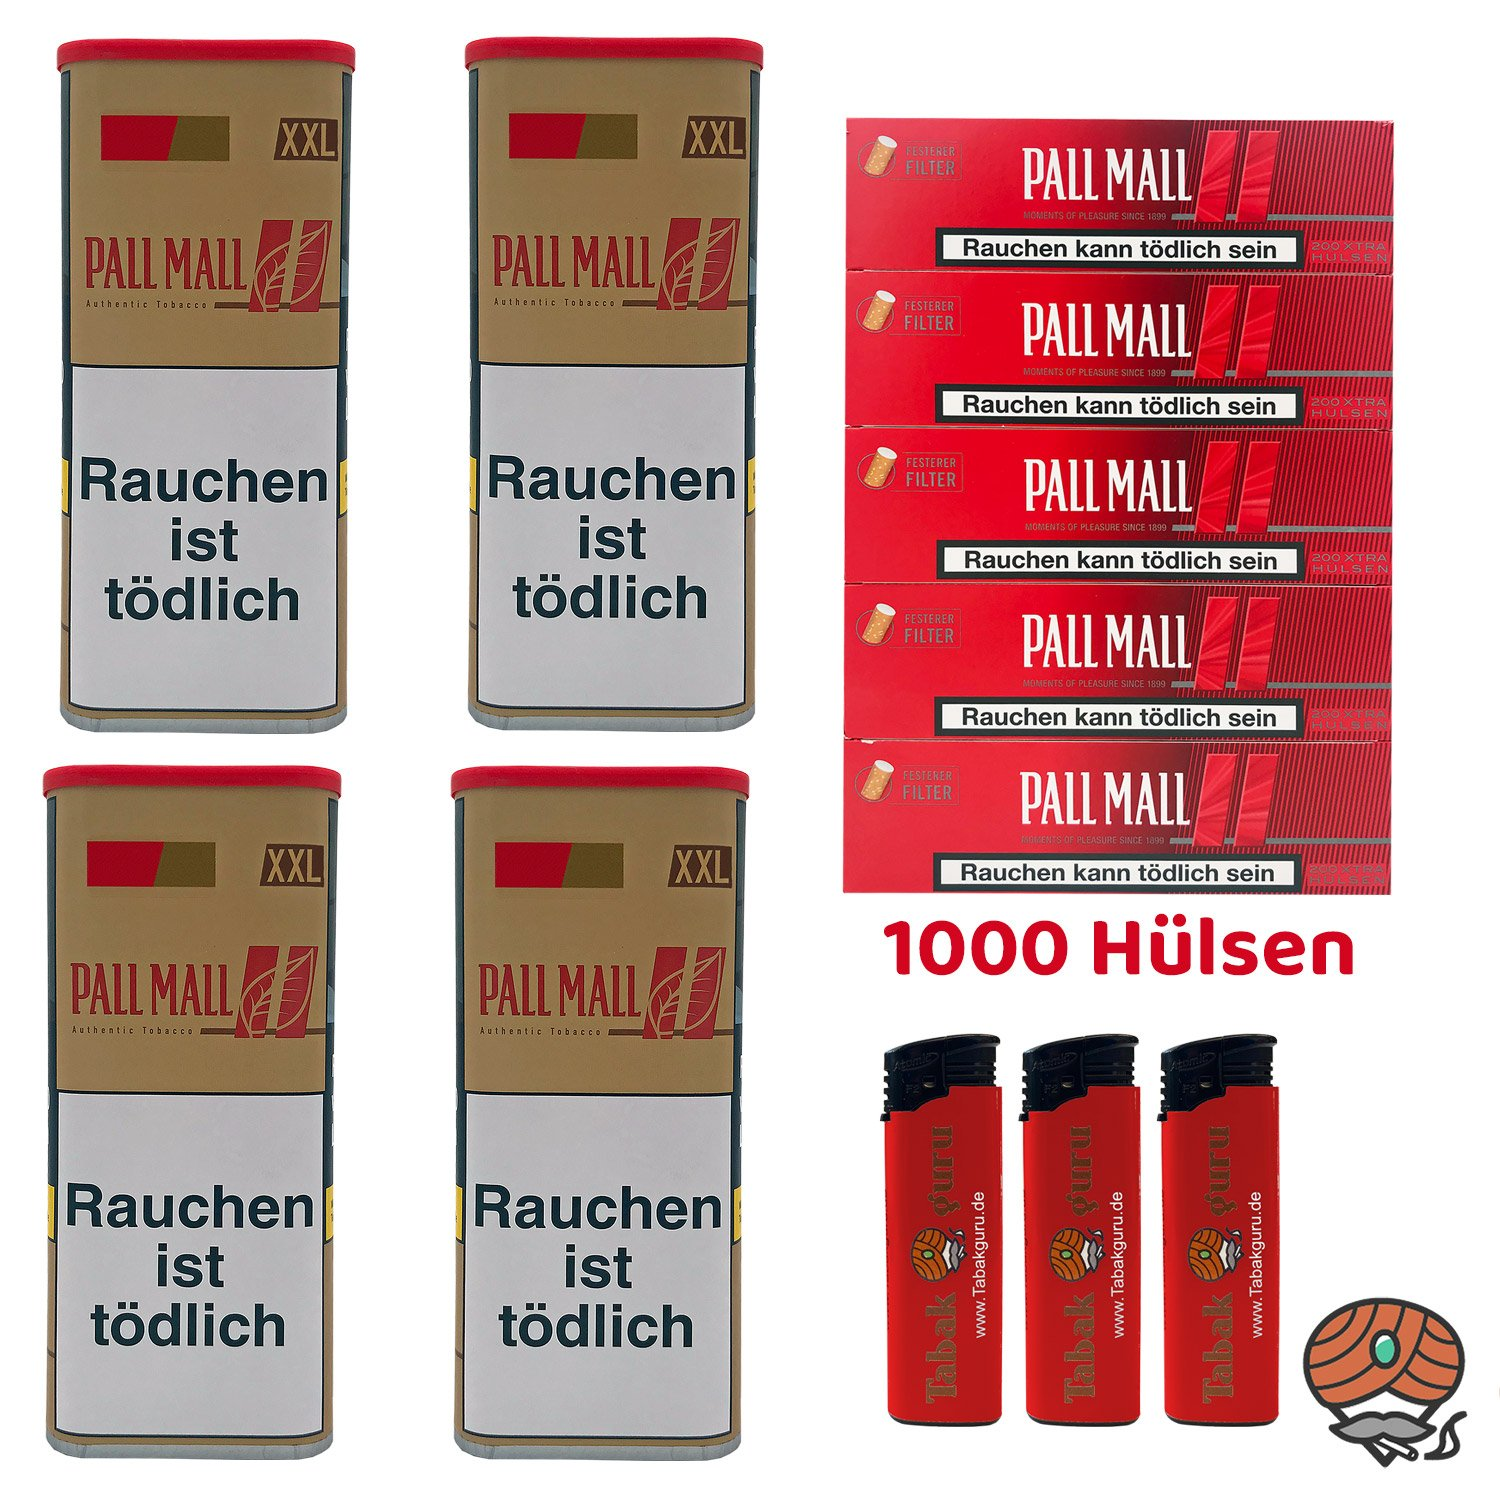 4x Pall Mall Authentic Red / Rot Tabak à 95 g, Pall Mall Xtra Hülsen, Feuerzeuge